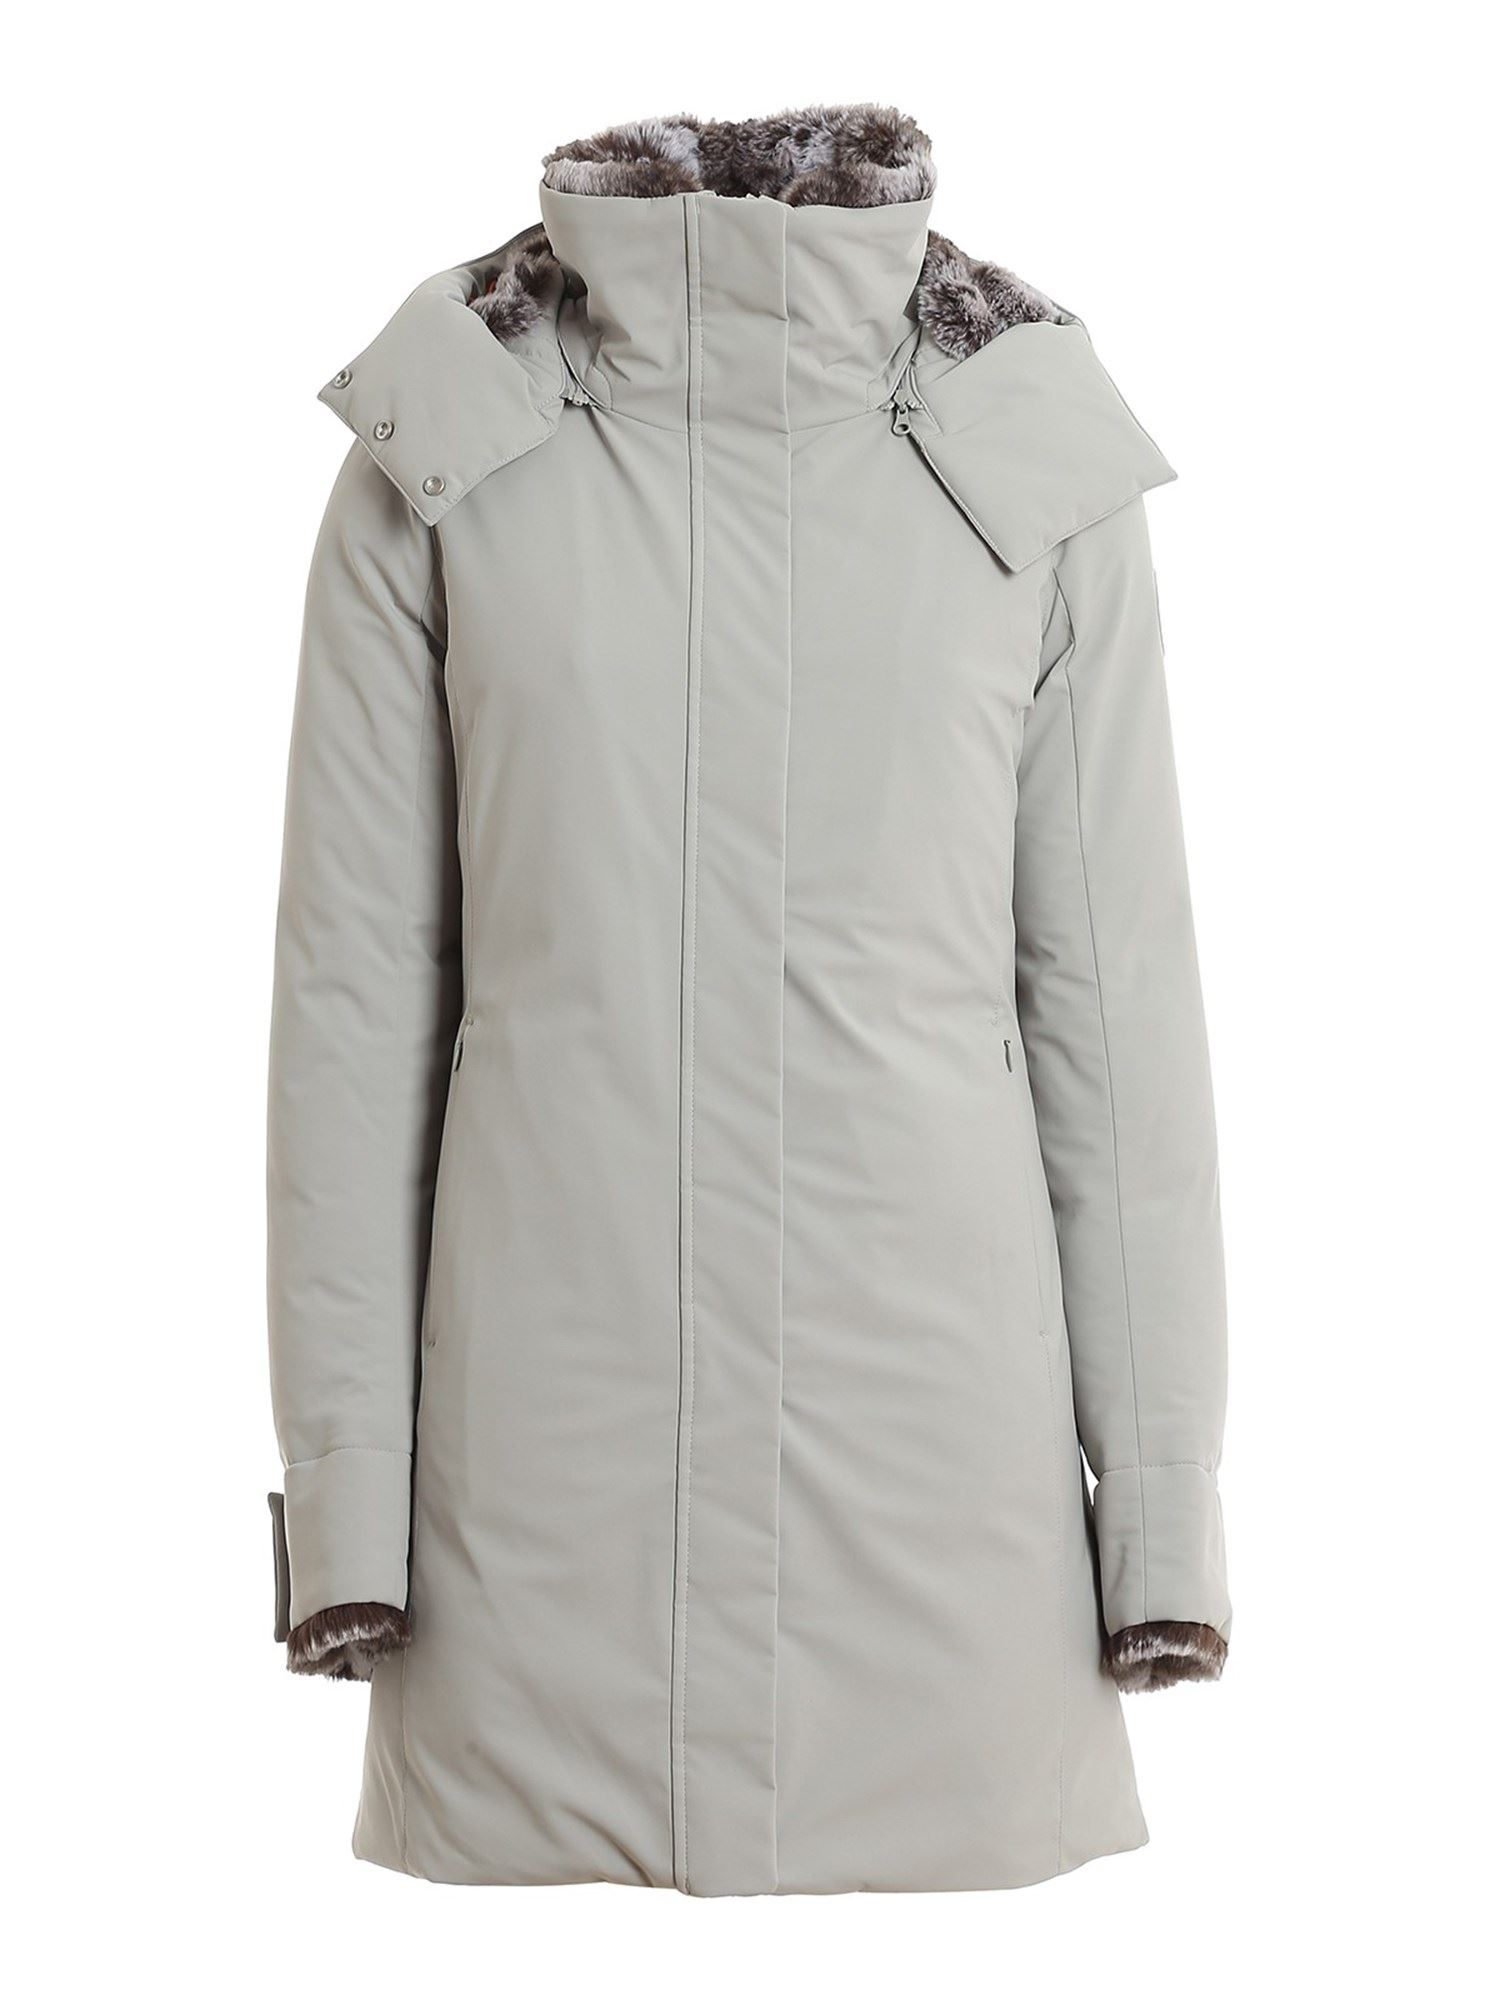 Save The Duck ARCTIC ECO-FRIENDLY DOWN JACKET IN GREY